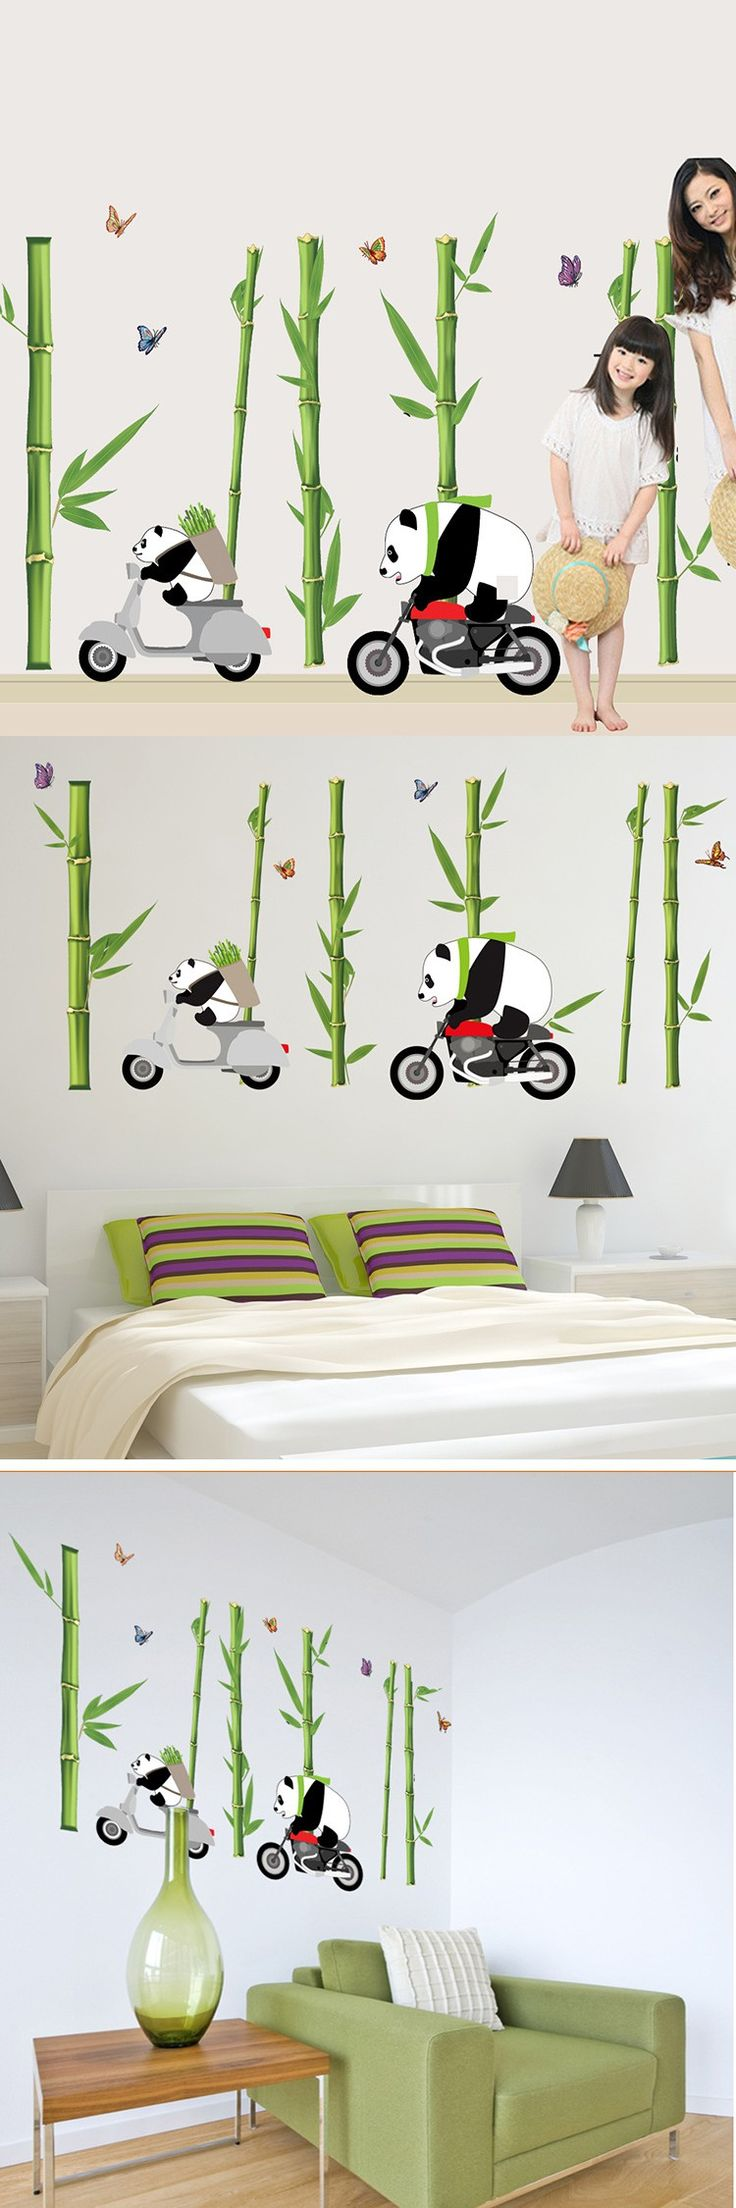 Wall stickers diy - New Cute Panda Bamboo Large Wall Stickers Home Decor Living Room Diy Art Decals Removable Pvc Wall Sticker For Decoration